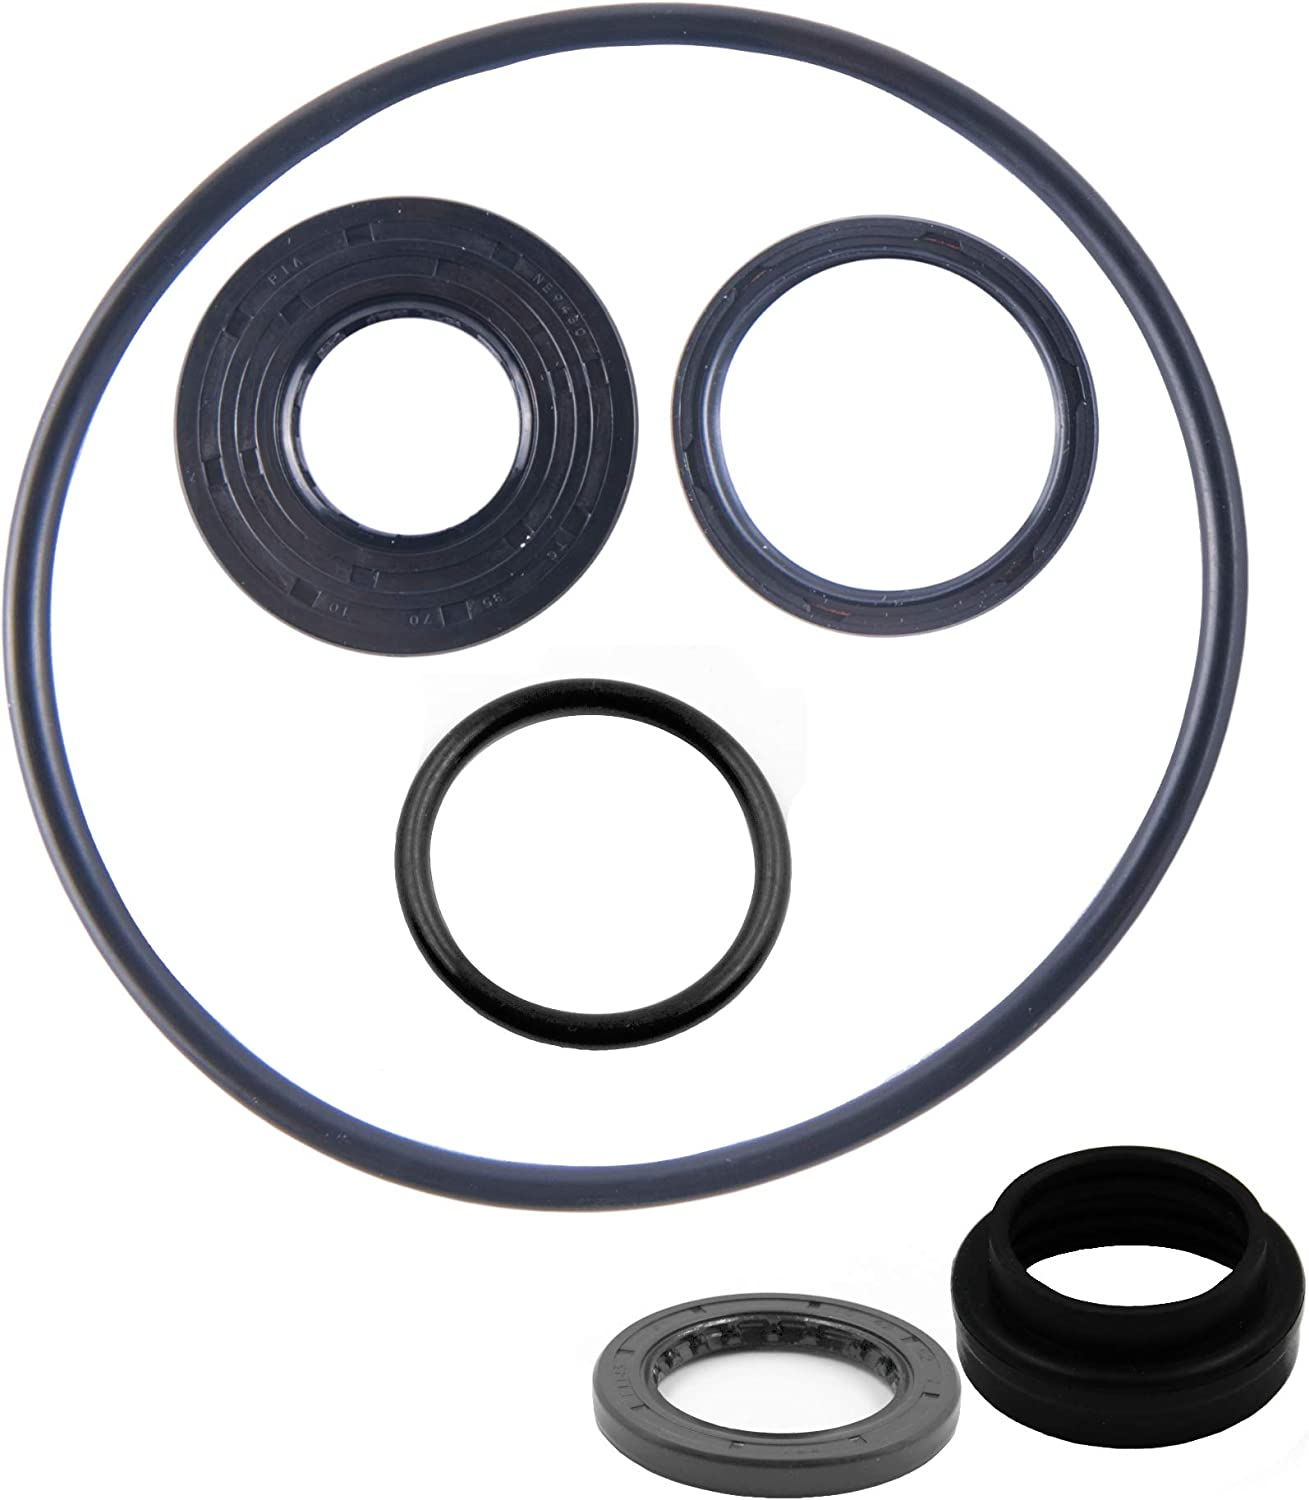 East Lake Axle Rear differential bearing /& seal kit compatible with Arctic Cat 250 300 2X4 2006 2007 2008 2009 2010 2011 2012 2013 2014 2015 2016